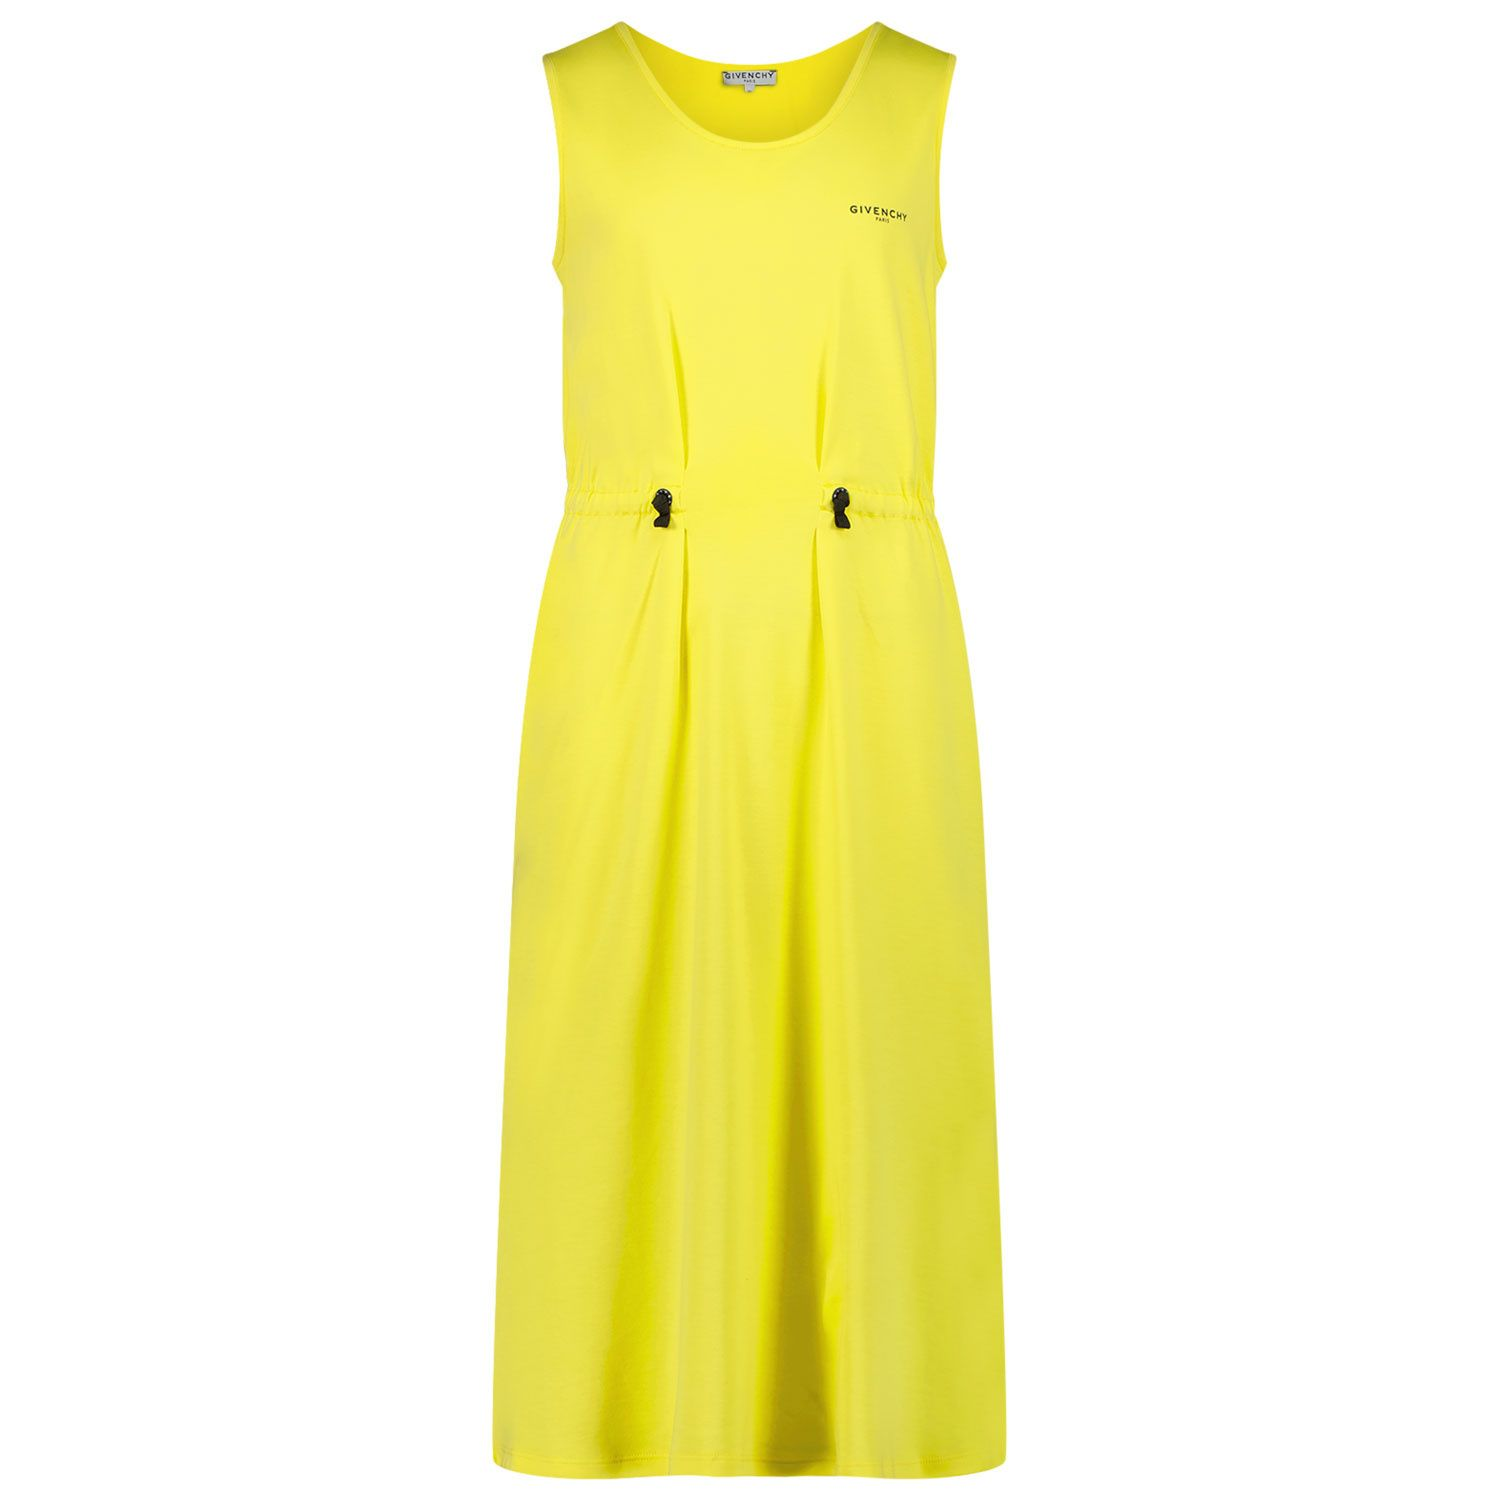 Picture of Givenchy H12151 kids dress yellow